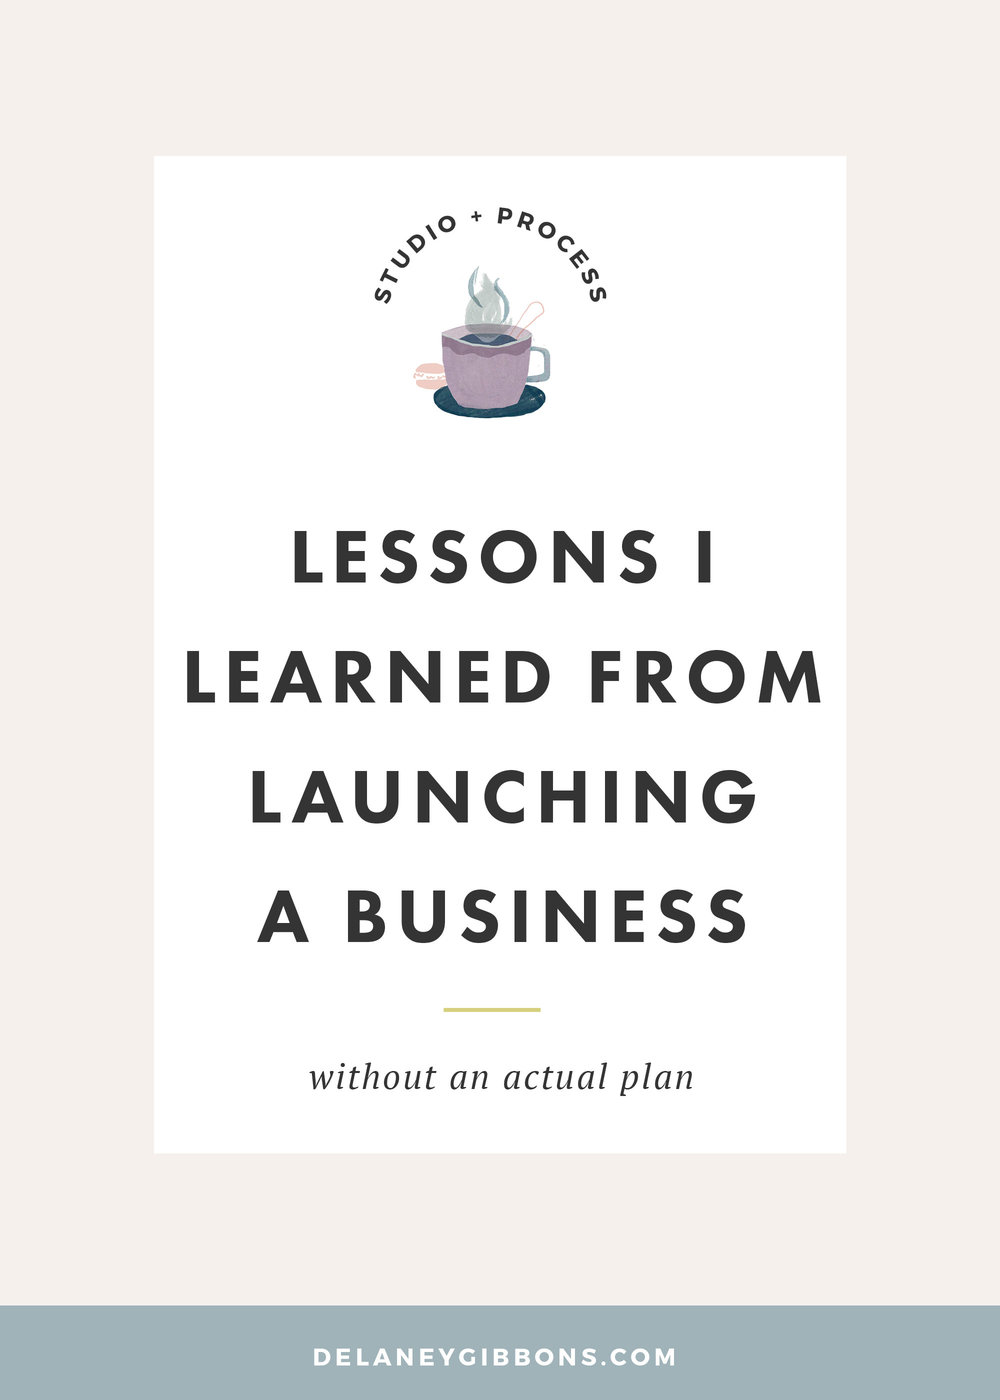 Lessons I Learned from Launching a Business Without an Actual Plan — from Delaney Gibbons Studio